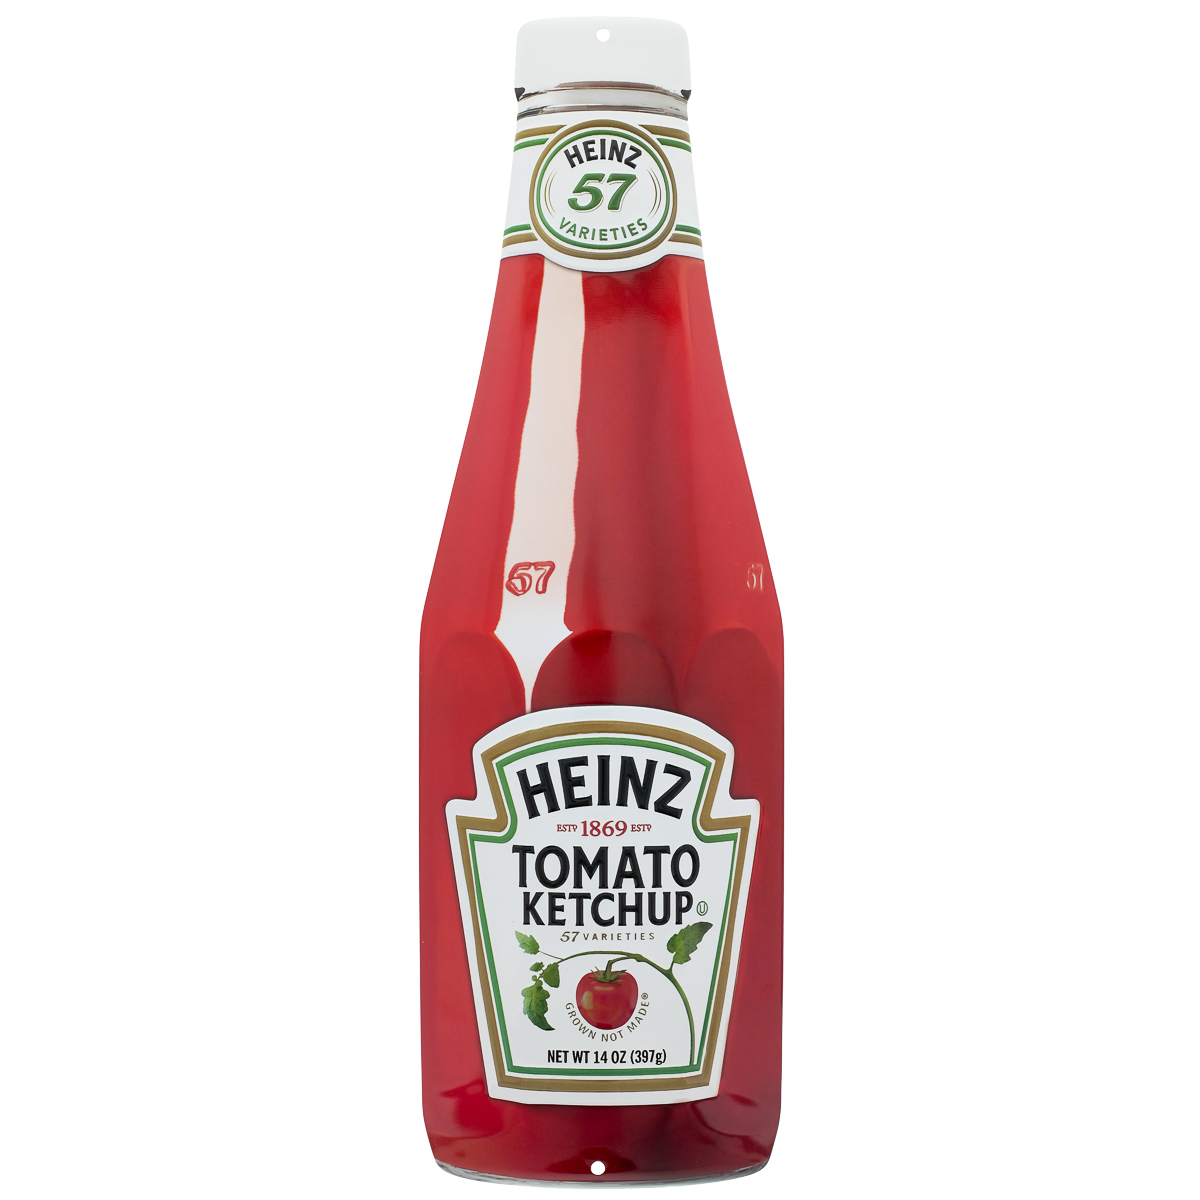 Heinz Tomato Ketchup Bottle Cutout Metal Sign Diner